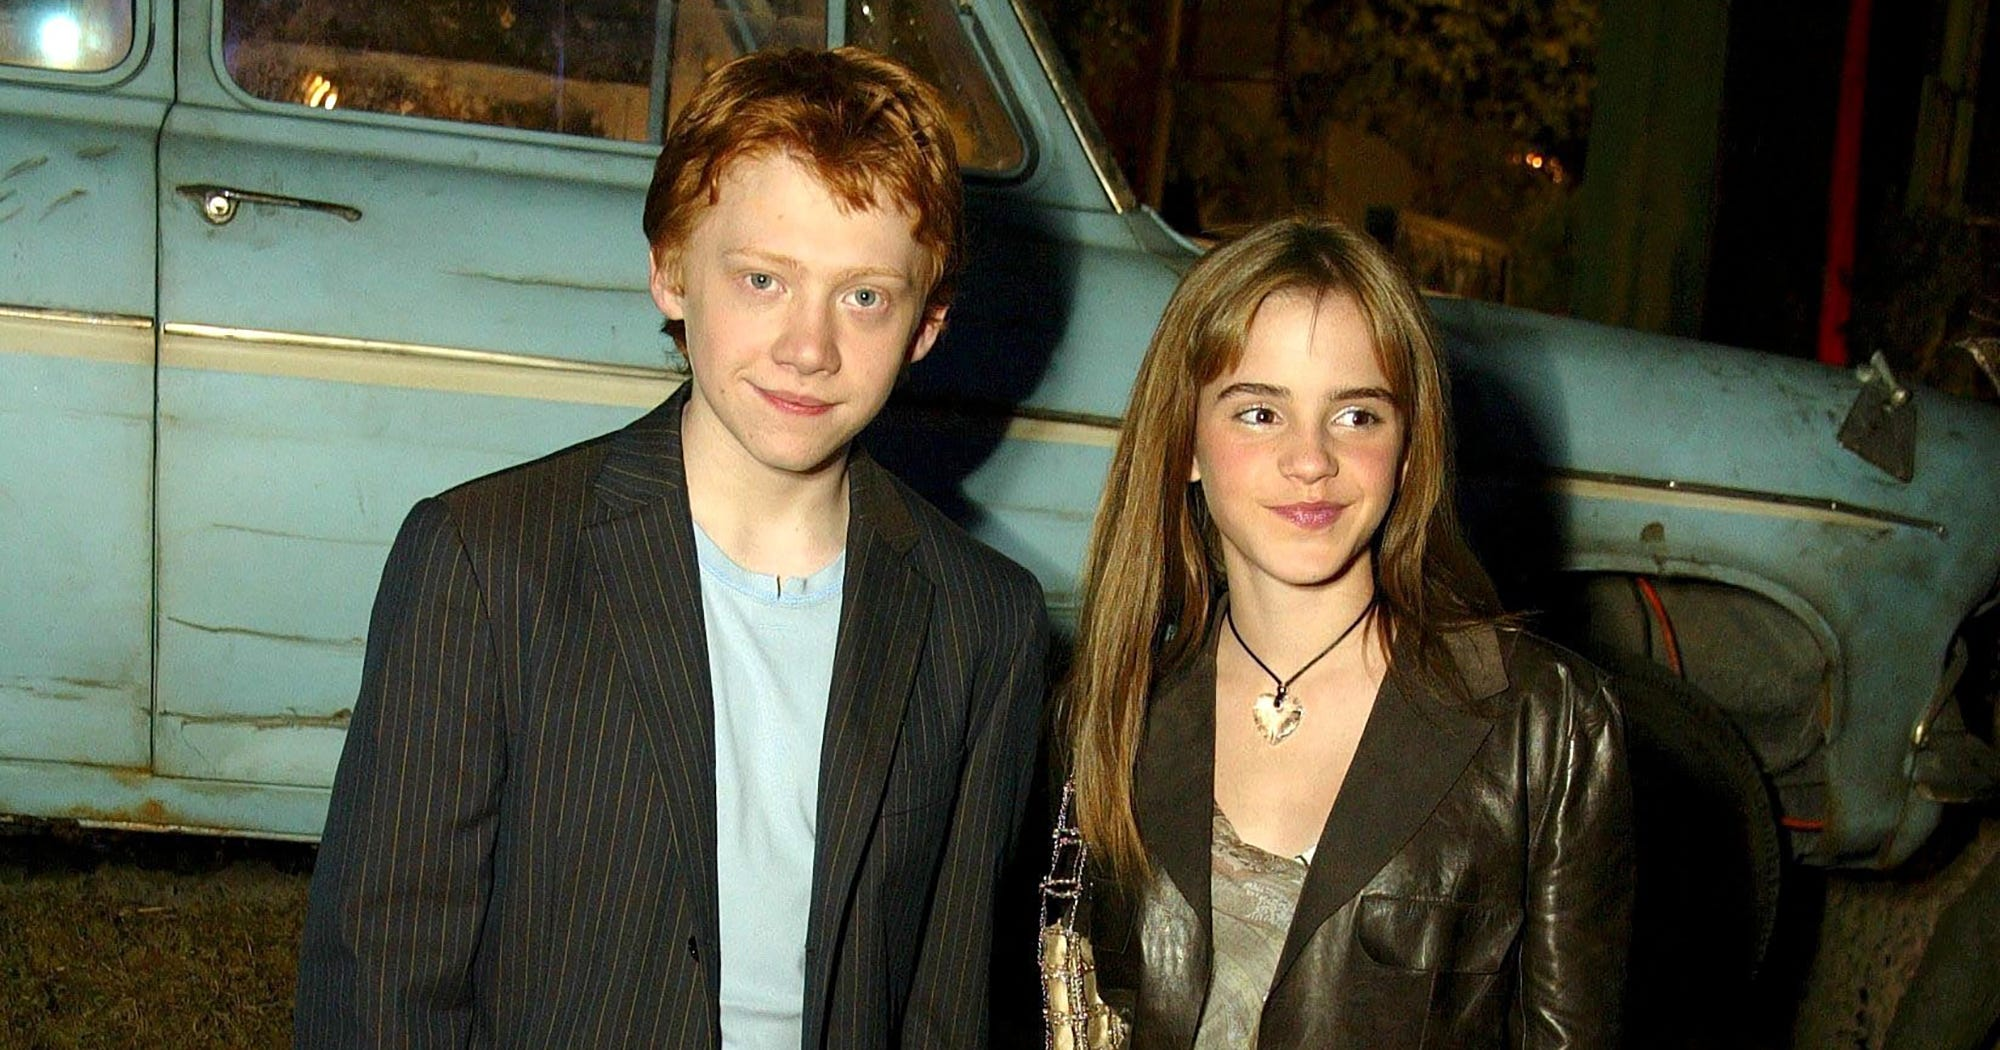 Hermione granger has sex with draco malfoy - 4 1